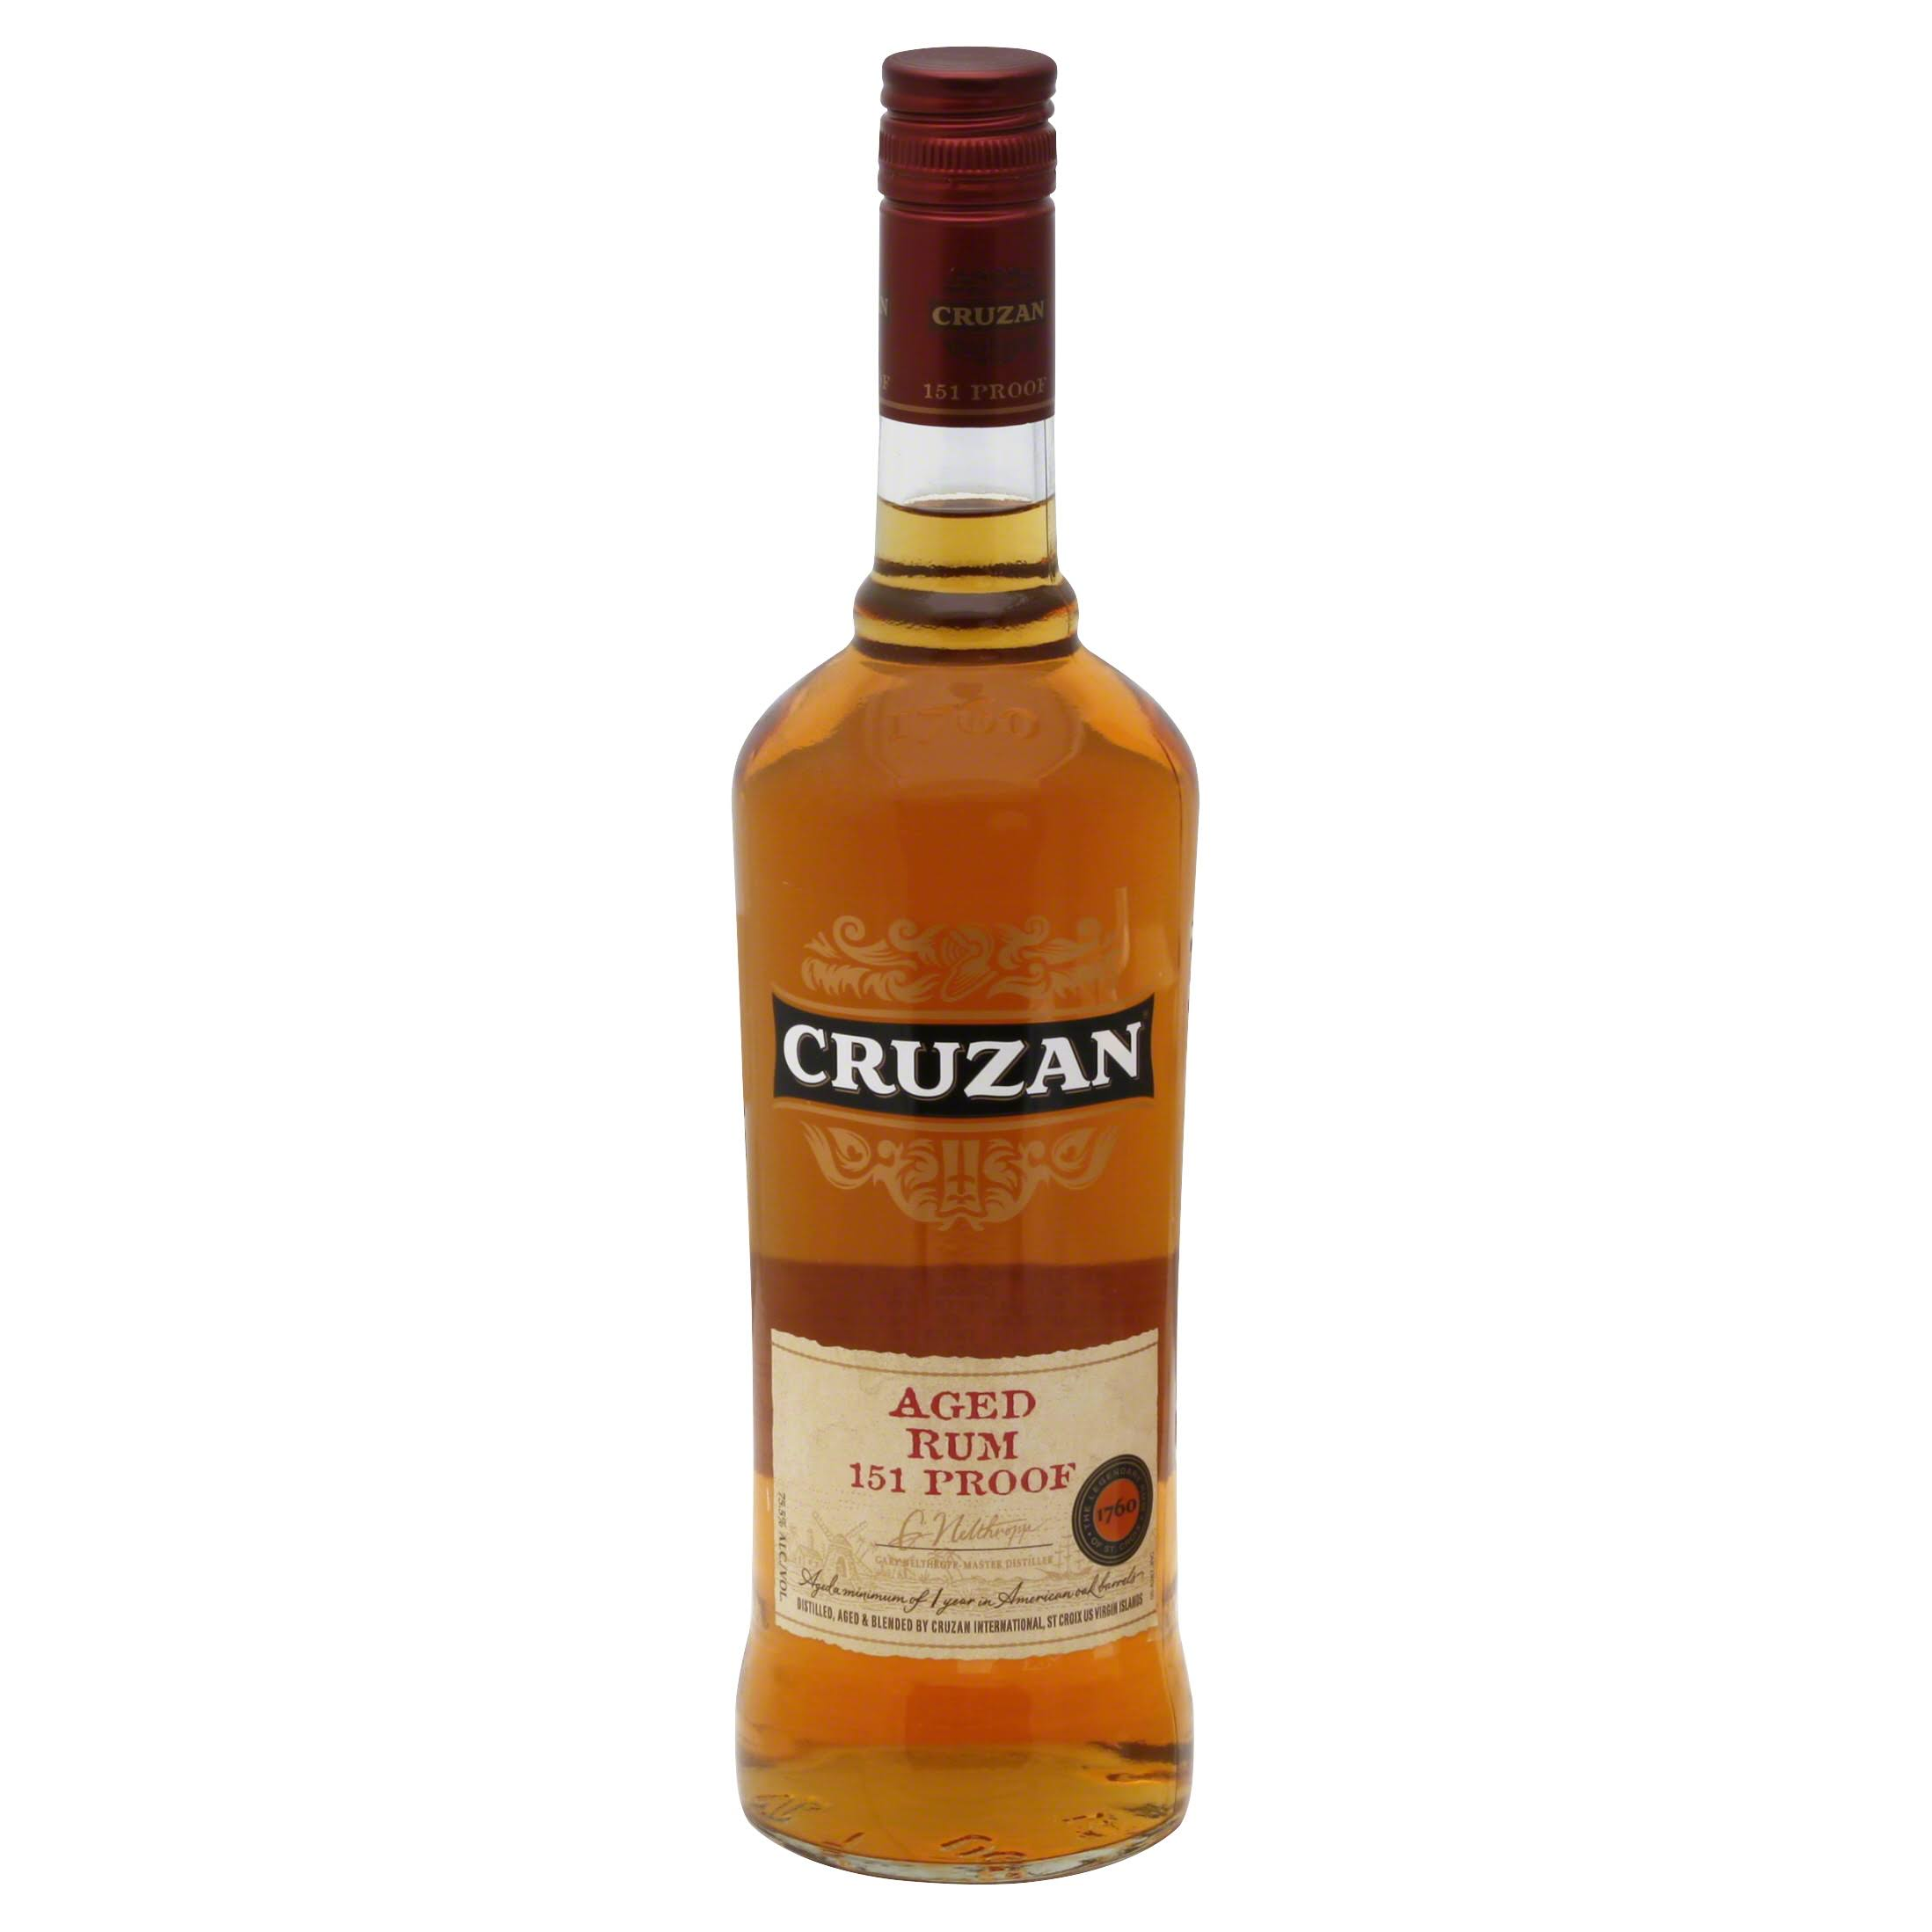 Cruzan 151 Proof Aged Rum